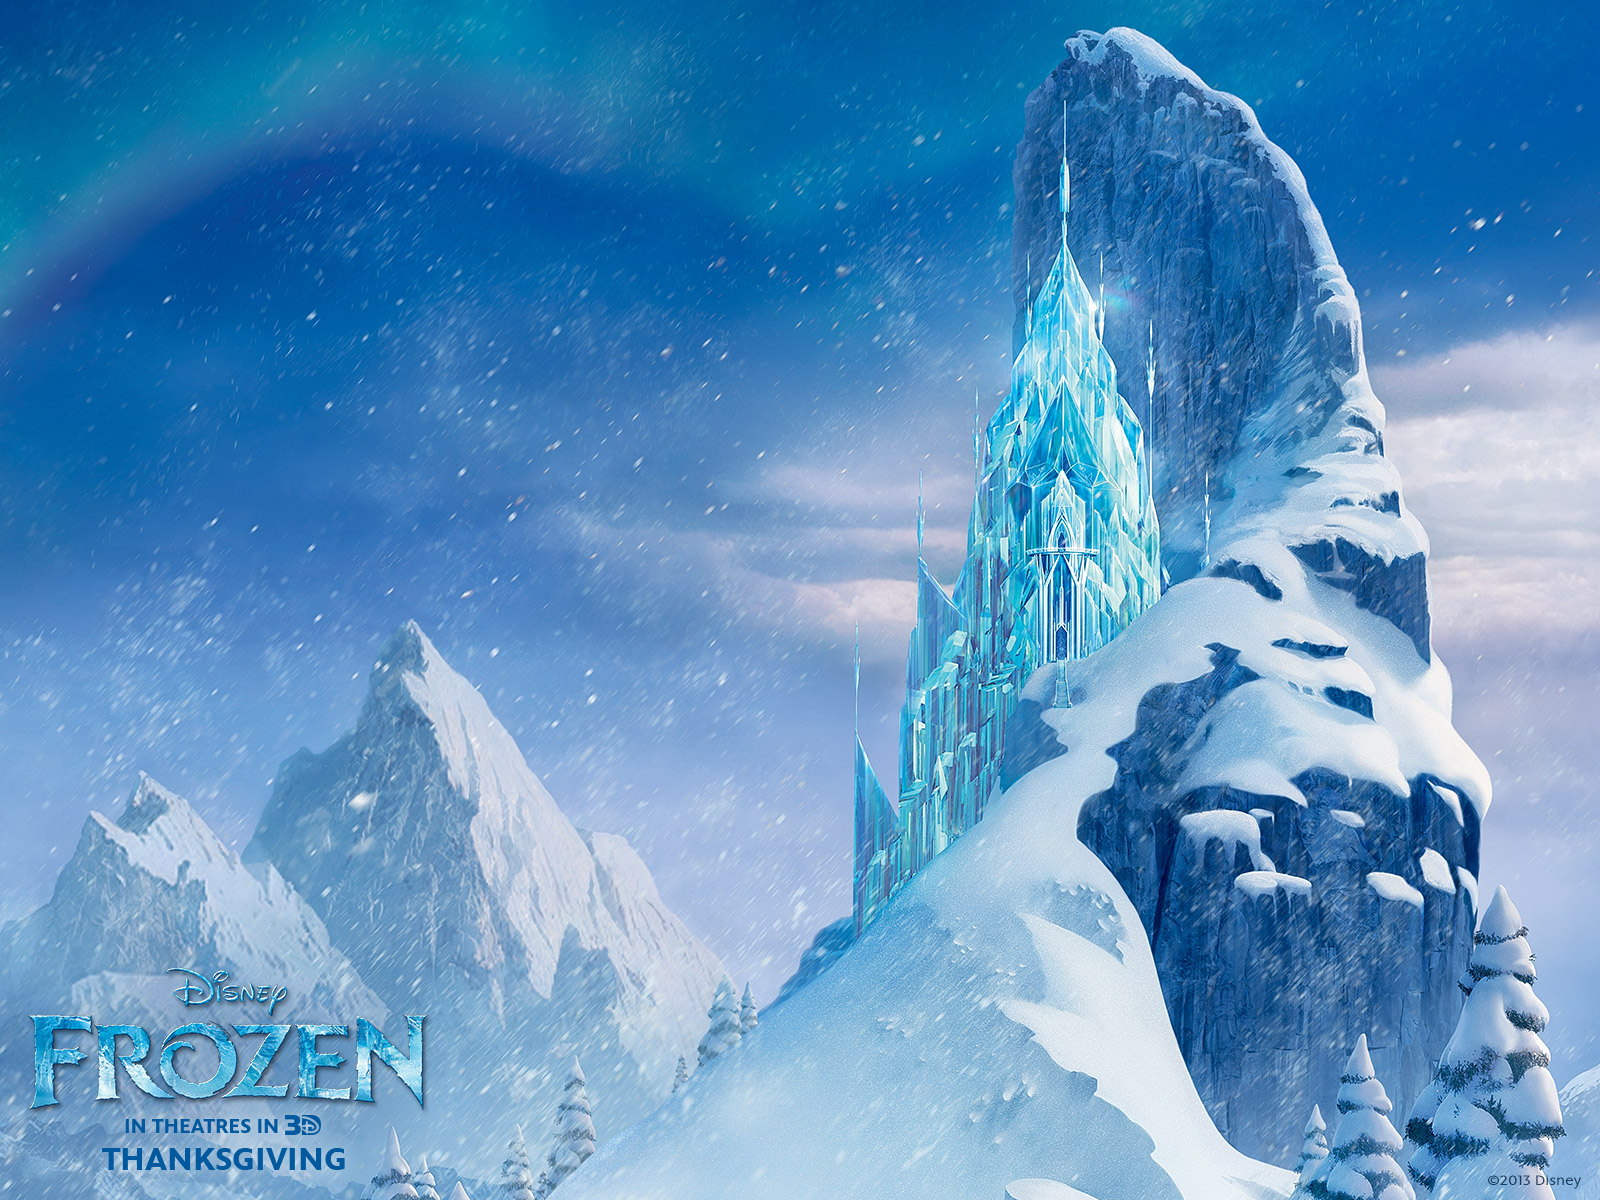 Official Disney Frozen wallpaper Bedroom ideas Pinterest 1600x1200